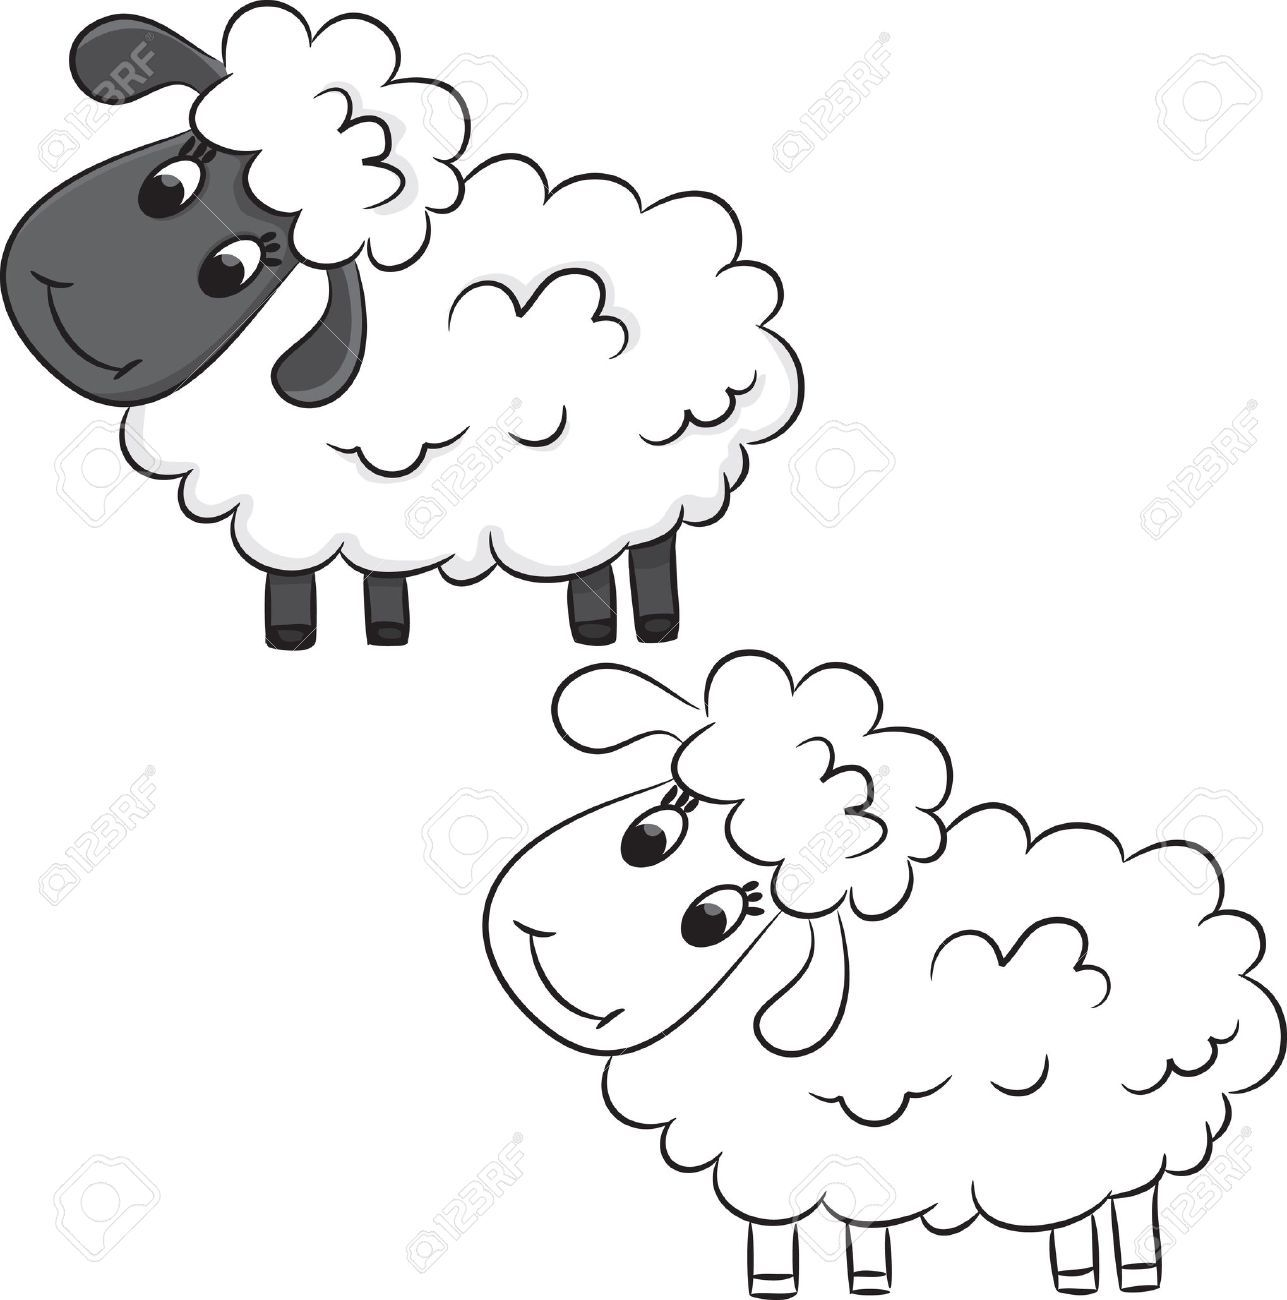 coloring pictures sheep : Cartoon Sheep Coloring Book Royalty Free Cliparts Vectors And Stock Illustration